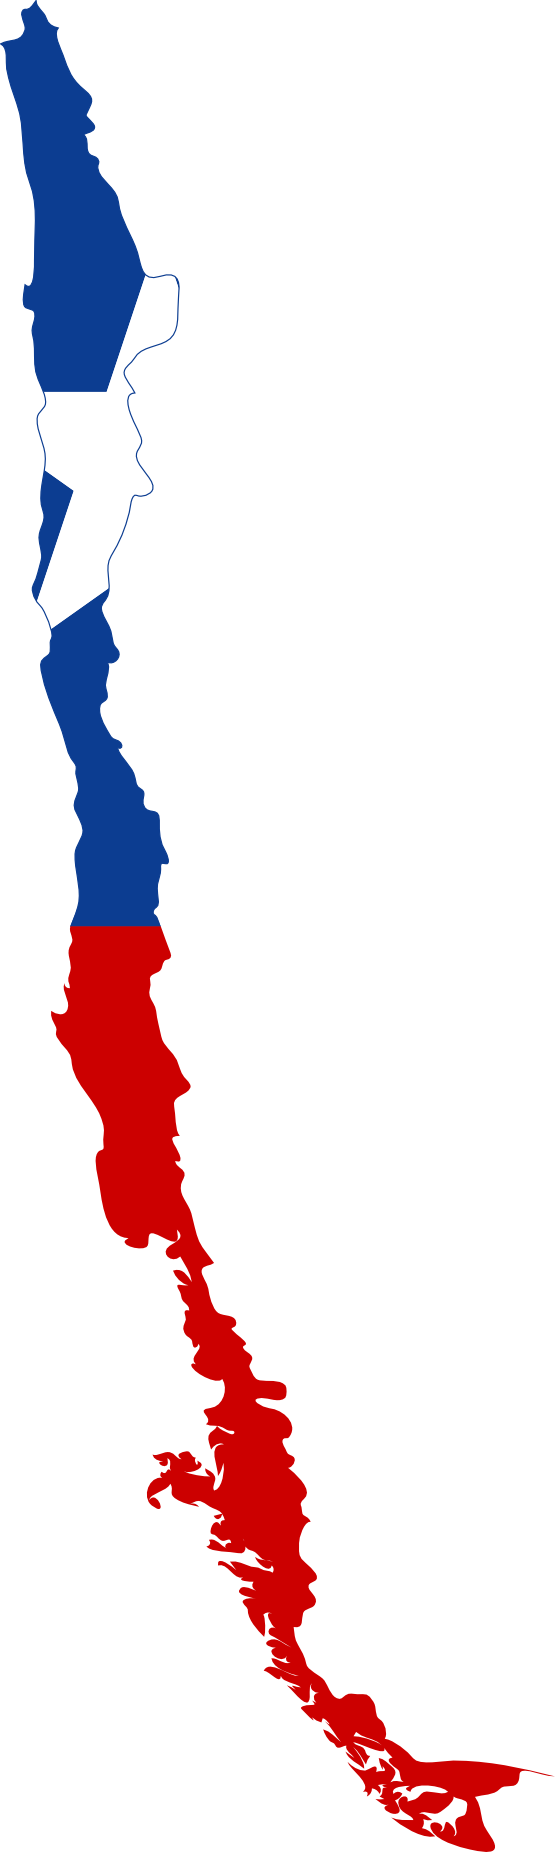 Chile clipart #5, Download drawings